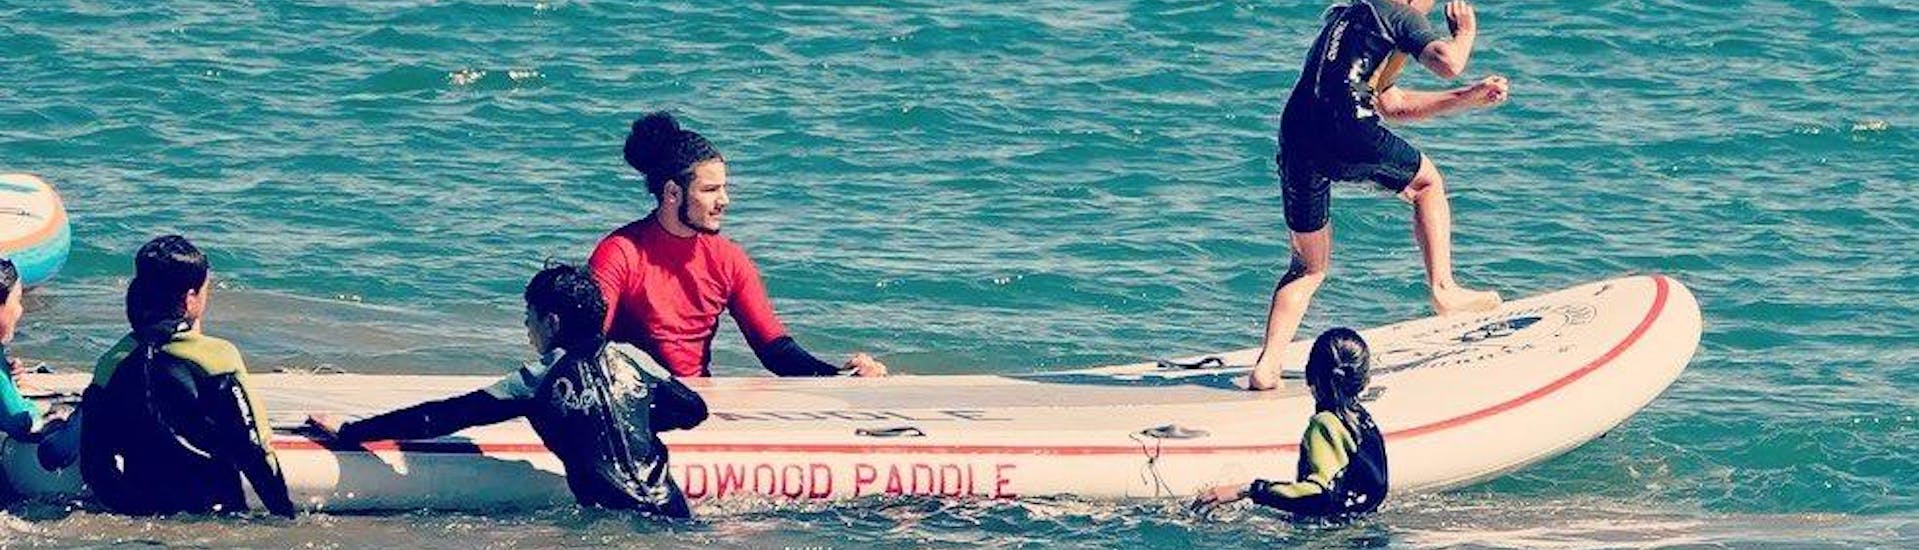 A family is enjoying a day out on the water with their Stand Up Paddleboarding Rental in Jàvea with Anywhere Watersports.